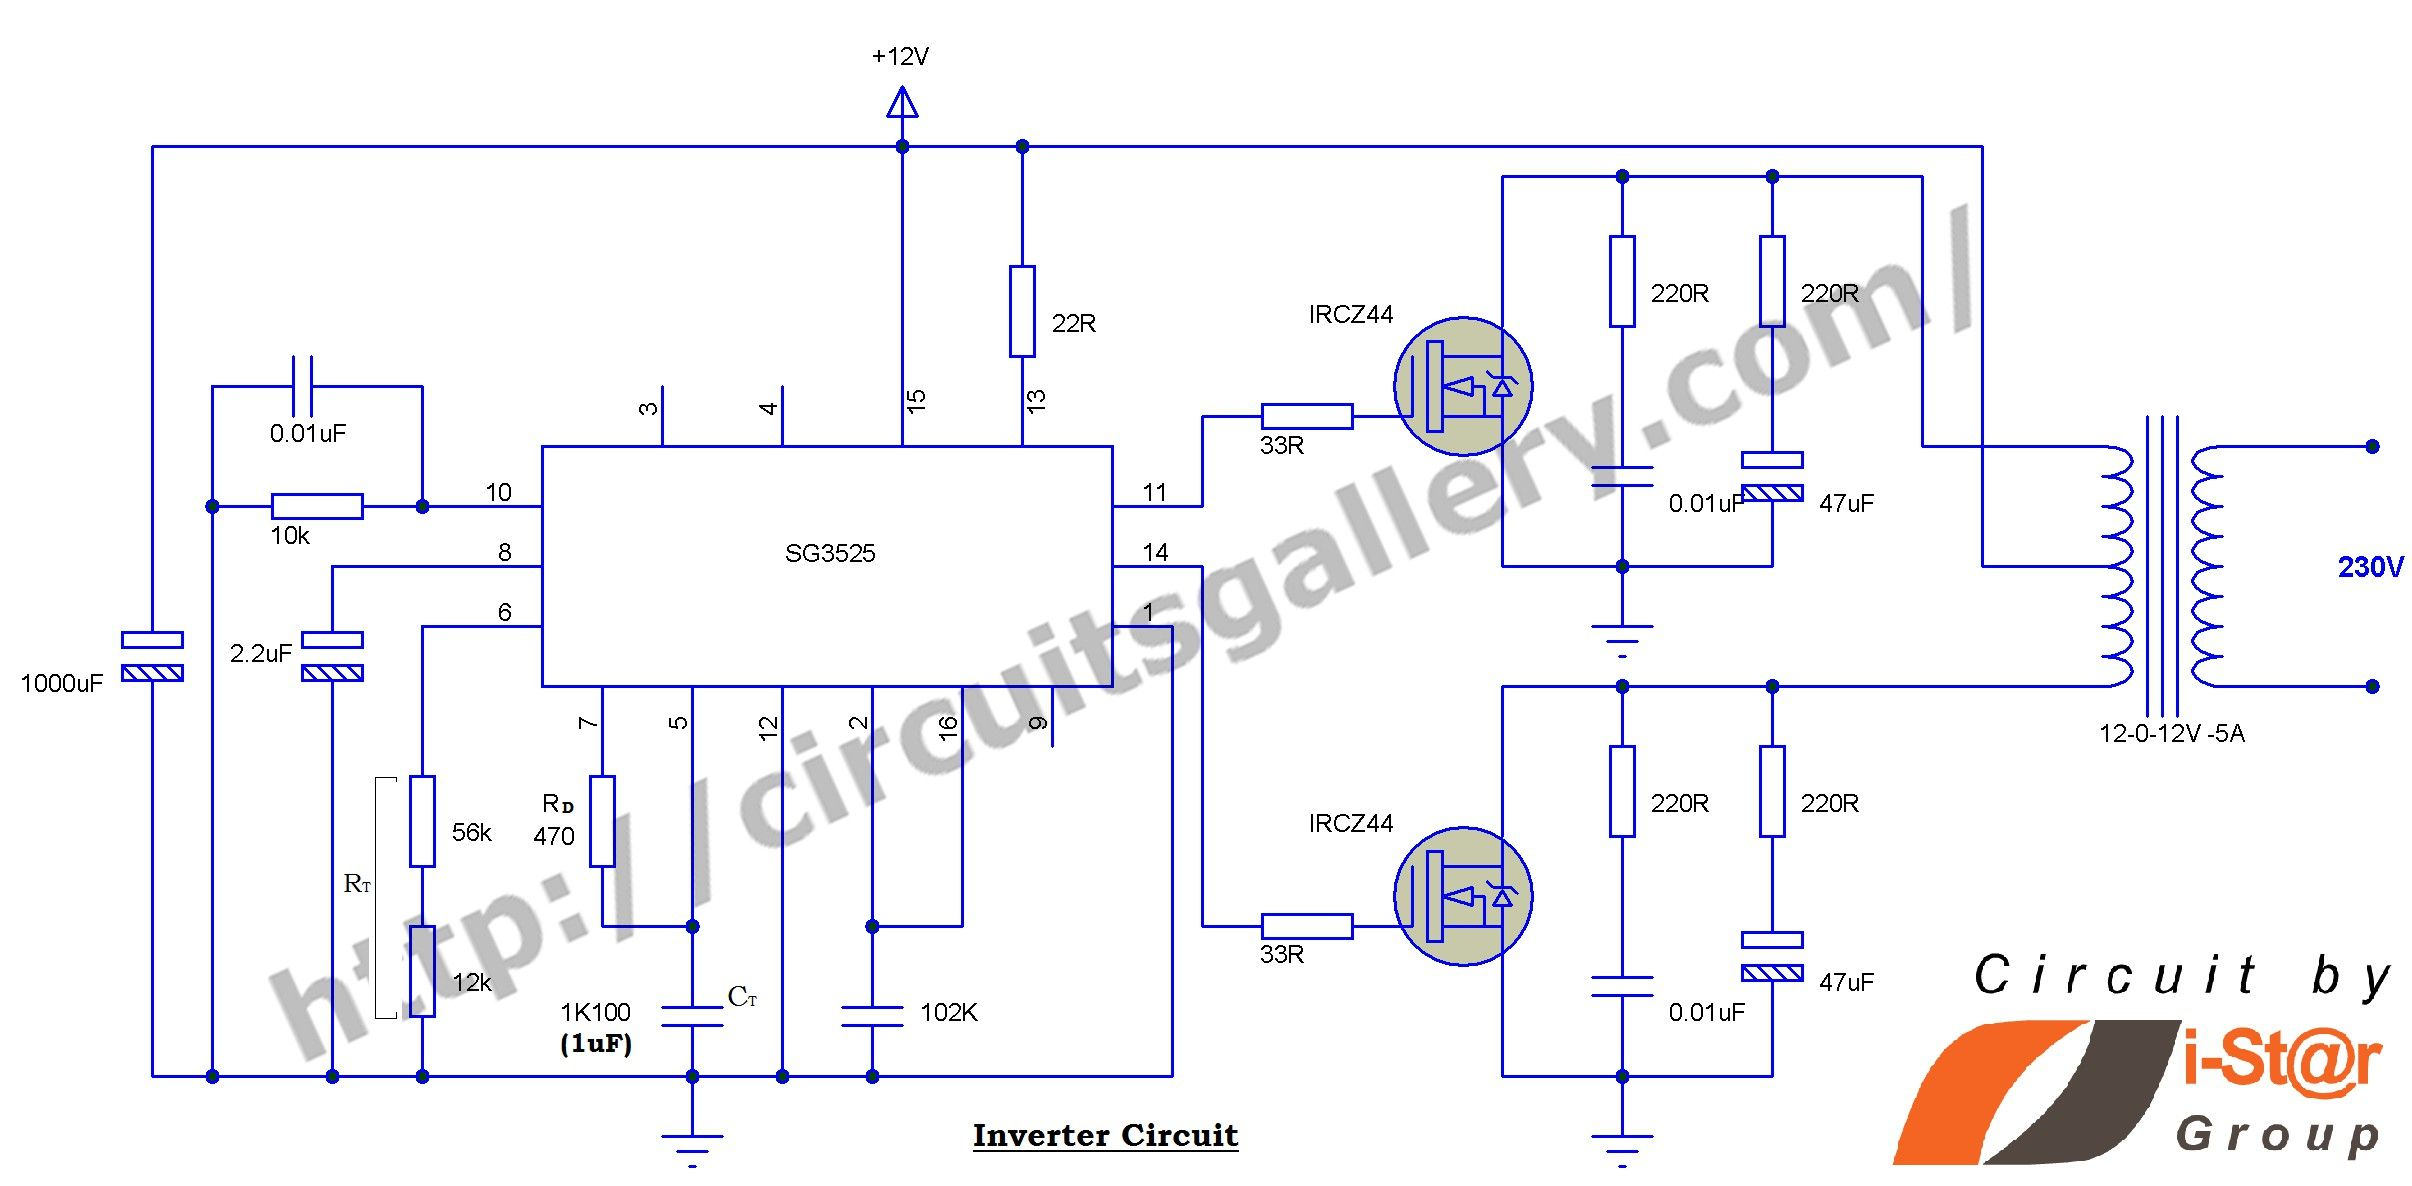 Inverter Basic Circuit Diagram Beautiful Simple Pwm Batterycharger Powersupplycircuit Using Chip Sg3524